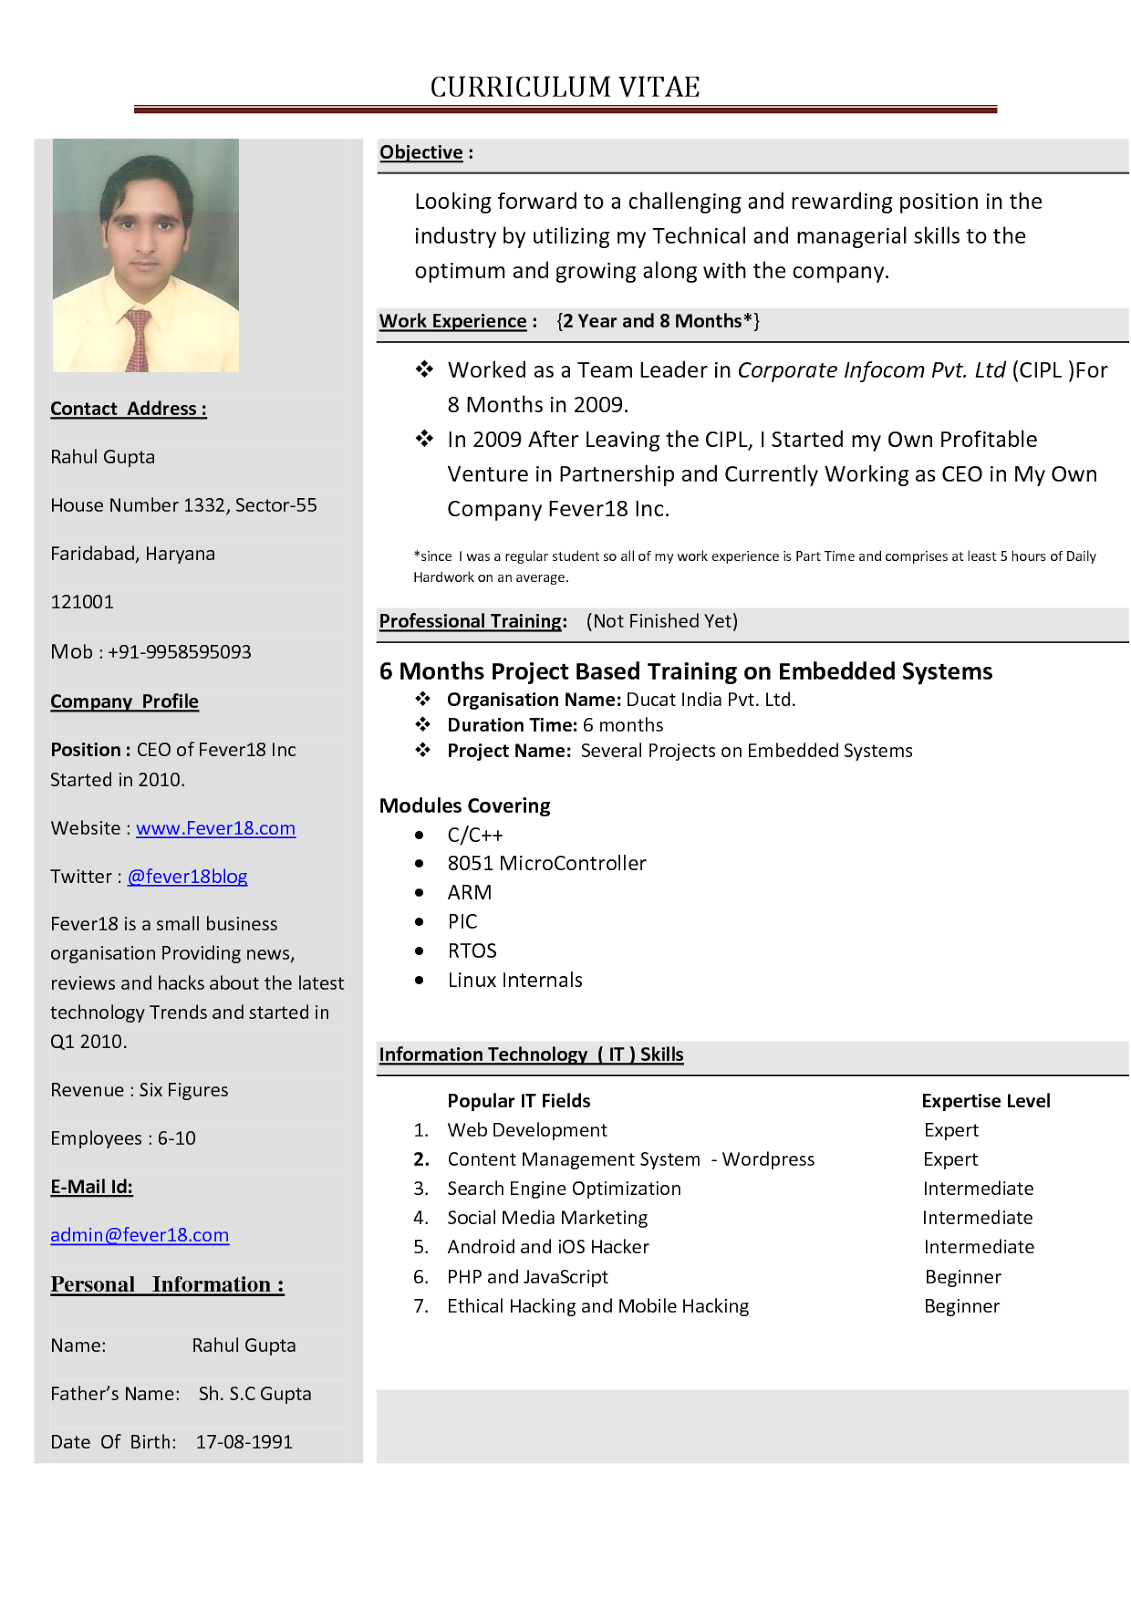 Create Professional Resumes Online For Free CV Creator CV Maker Image  Titled Create A Resume For  Make A Free Resume Online